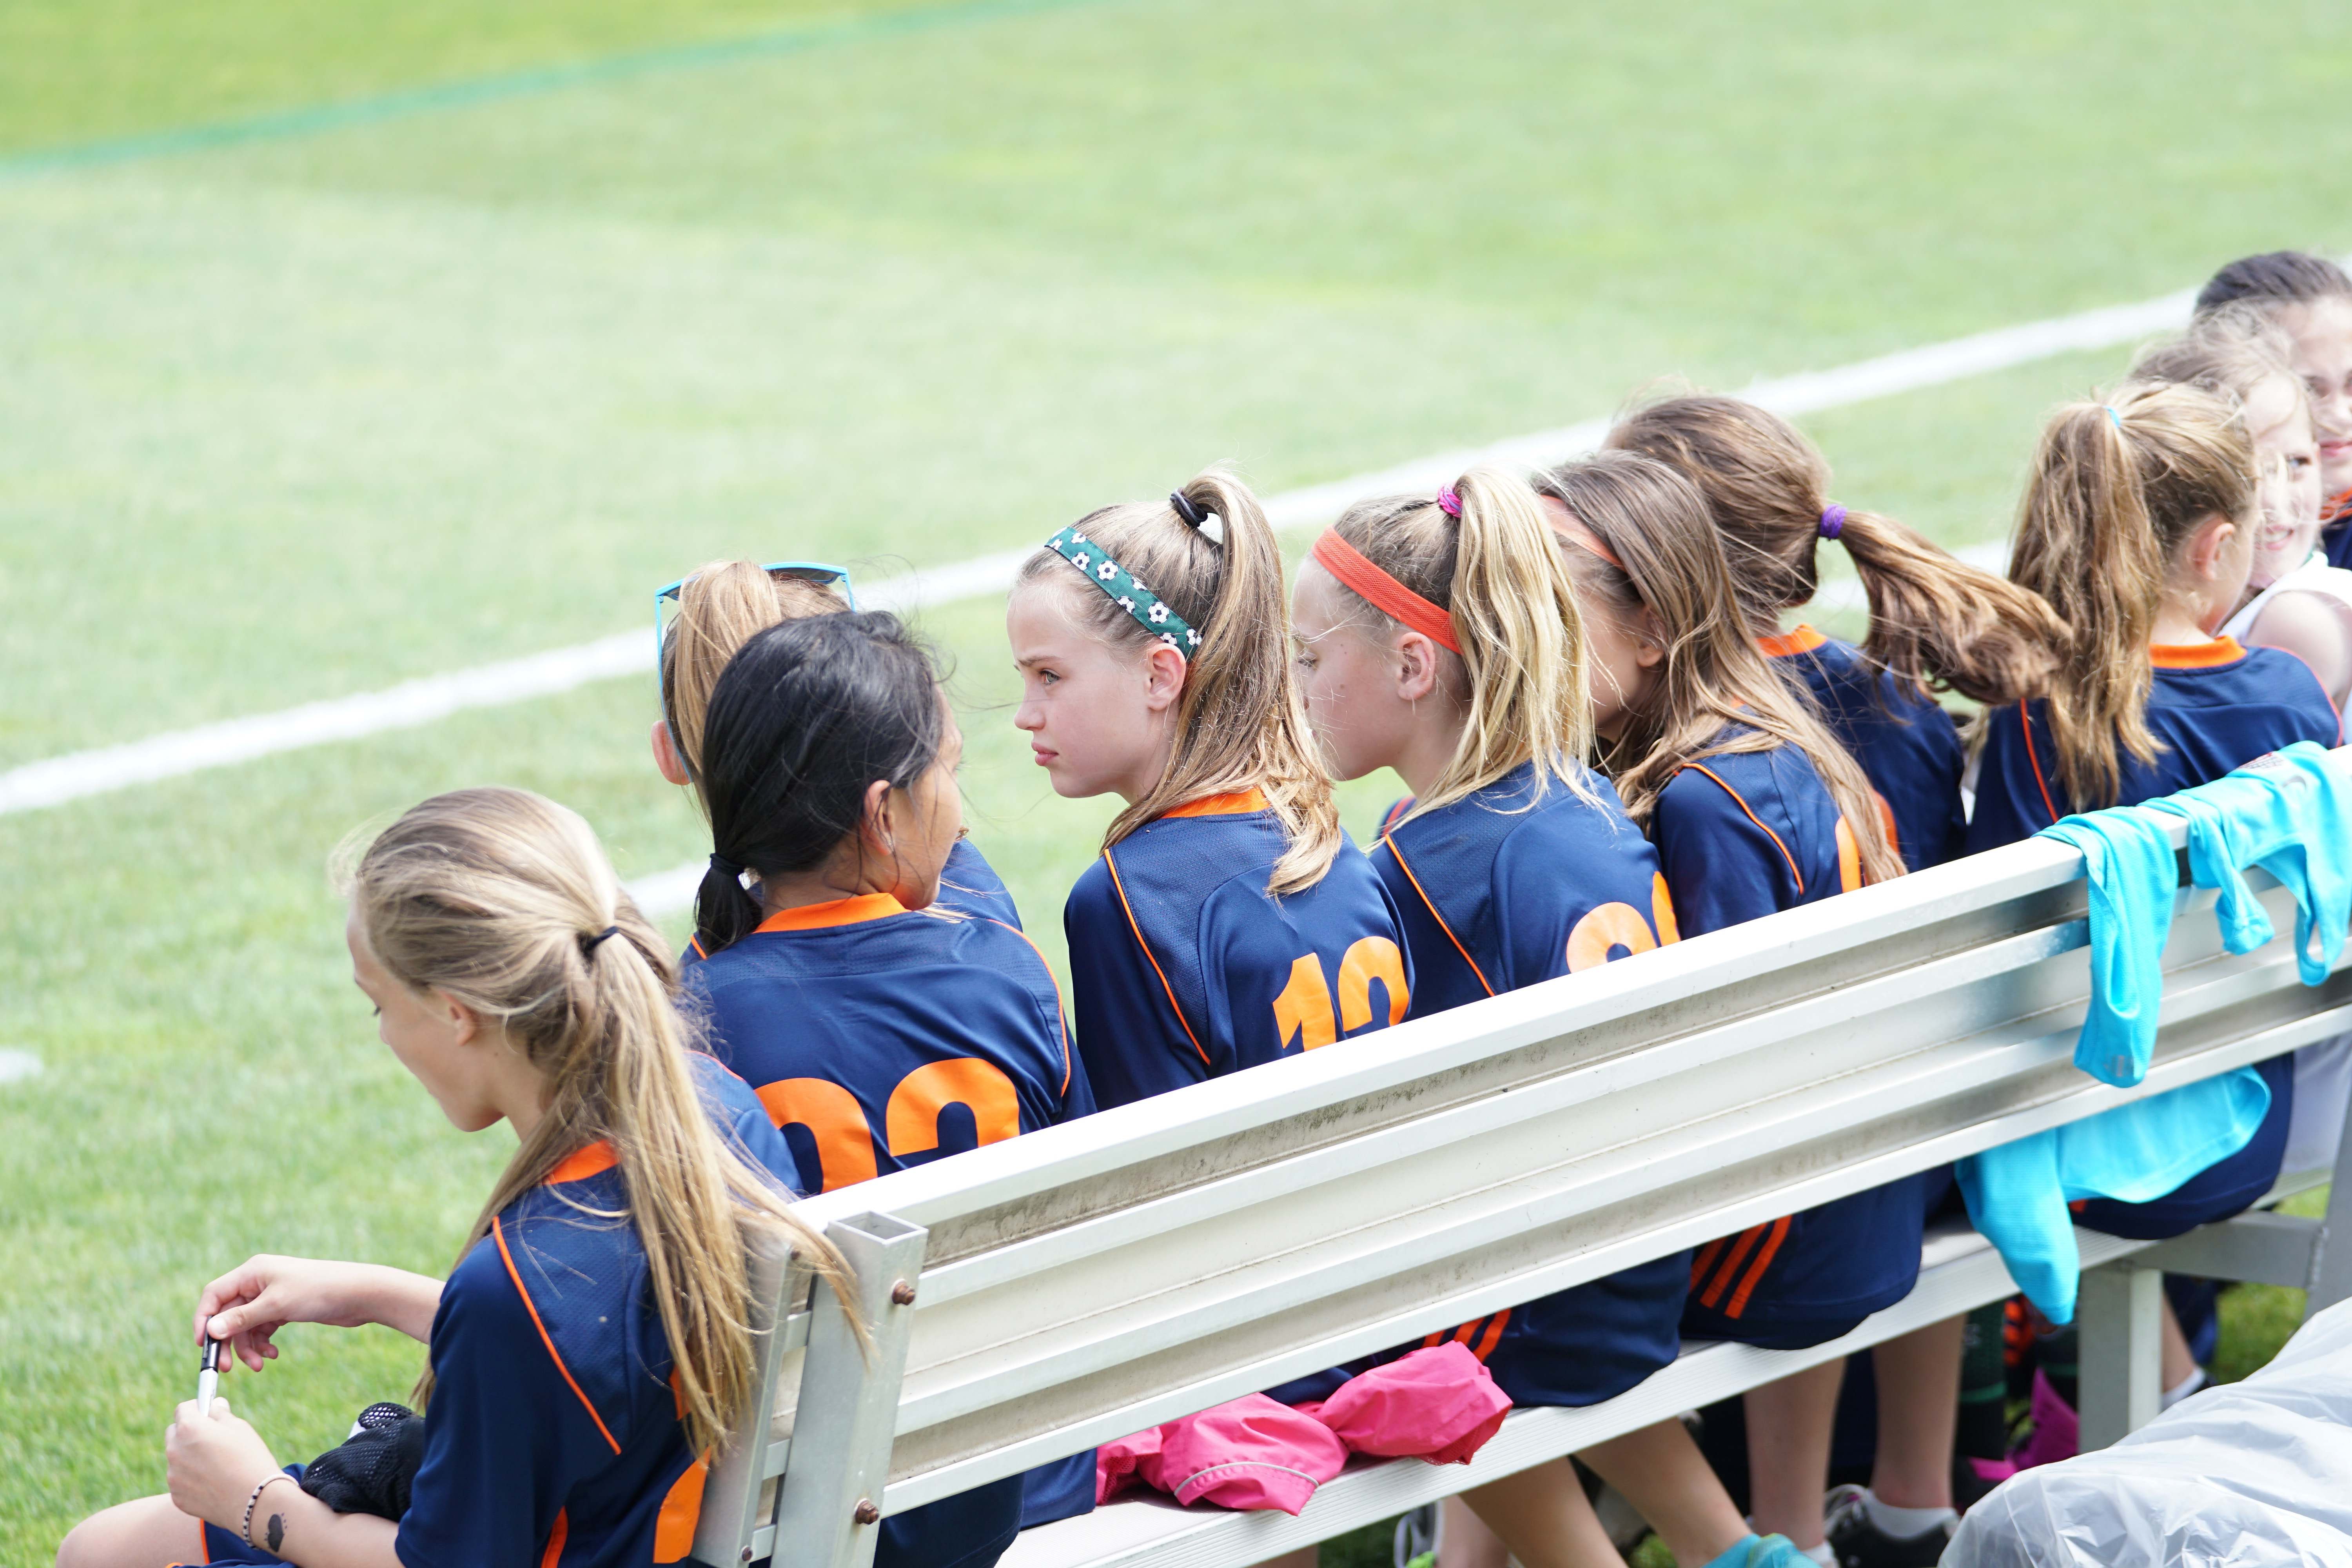 A girl's soccer team sits on a bench, awaiting kick-off.